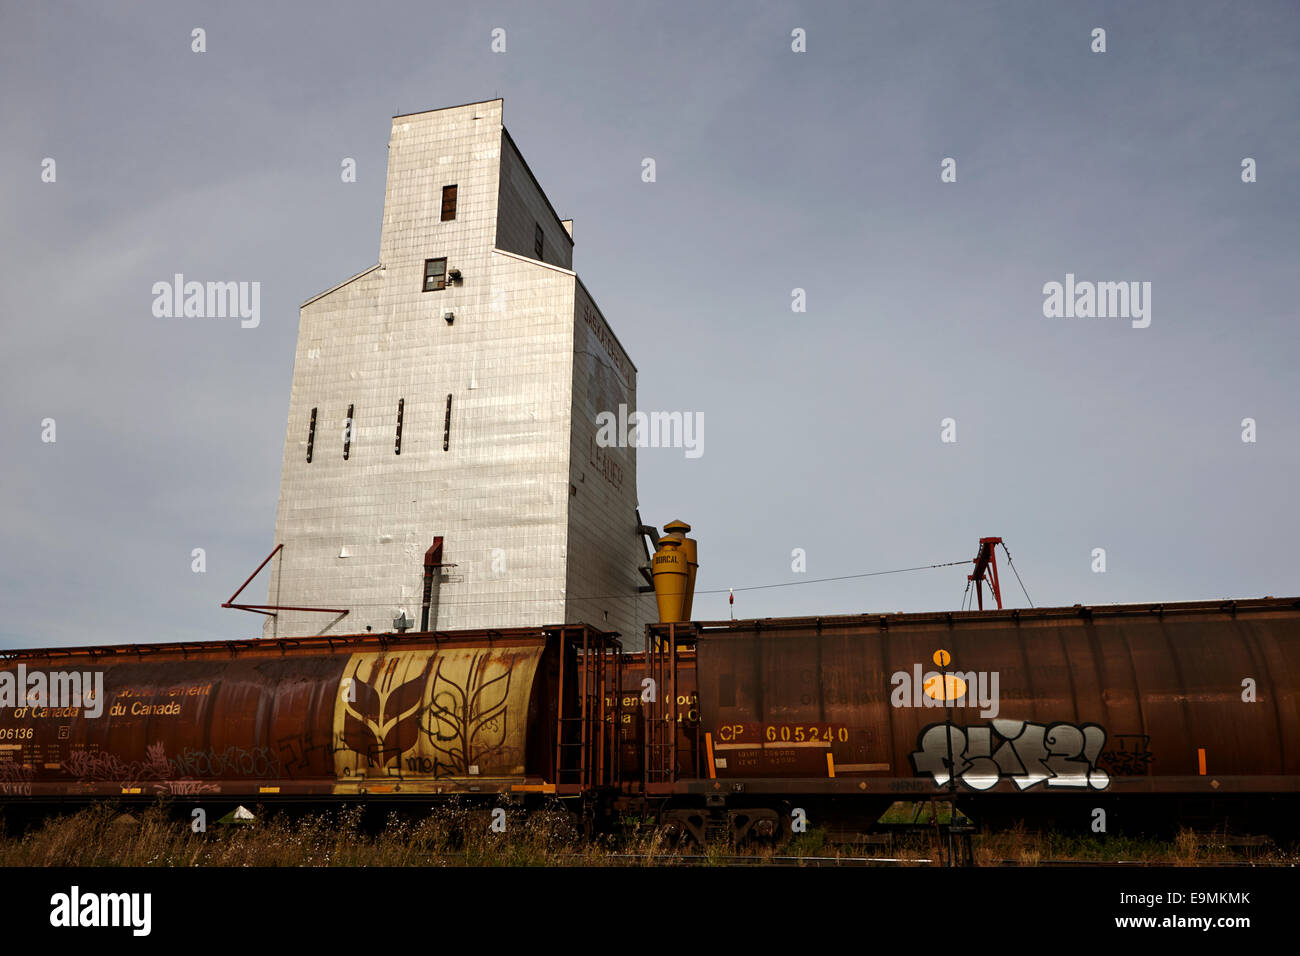 grain elevator with bulk transport train in leader Saskatchewan Canada - Stock Image